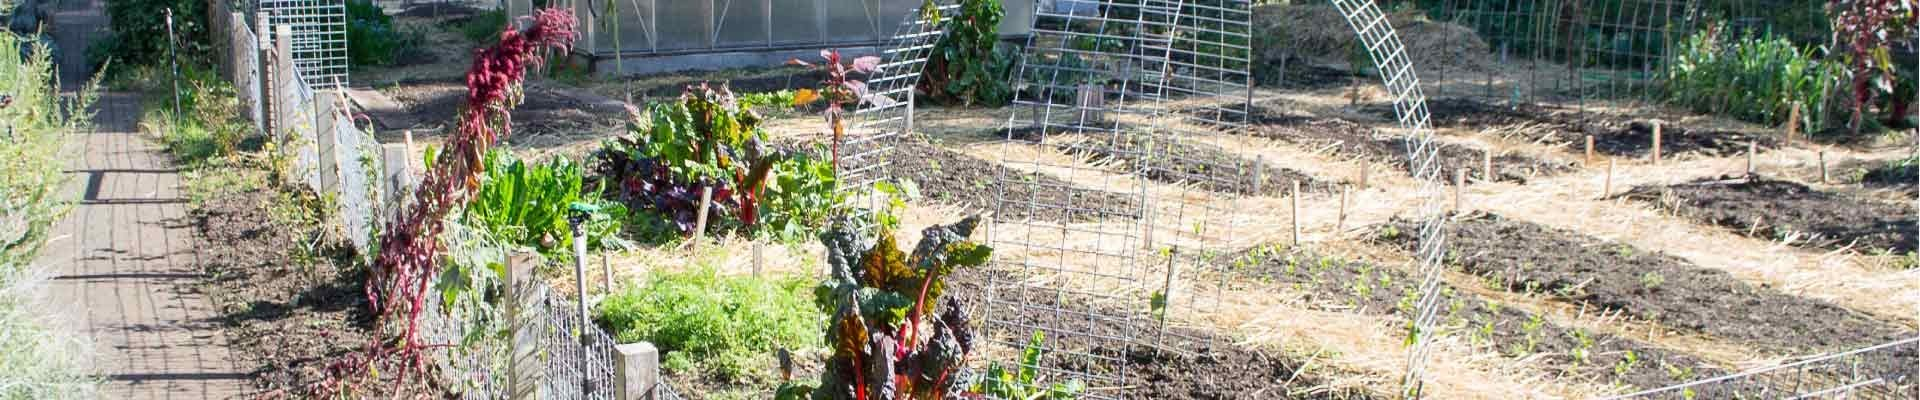 Image of urban vegetable plots